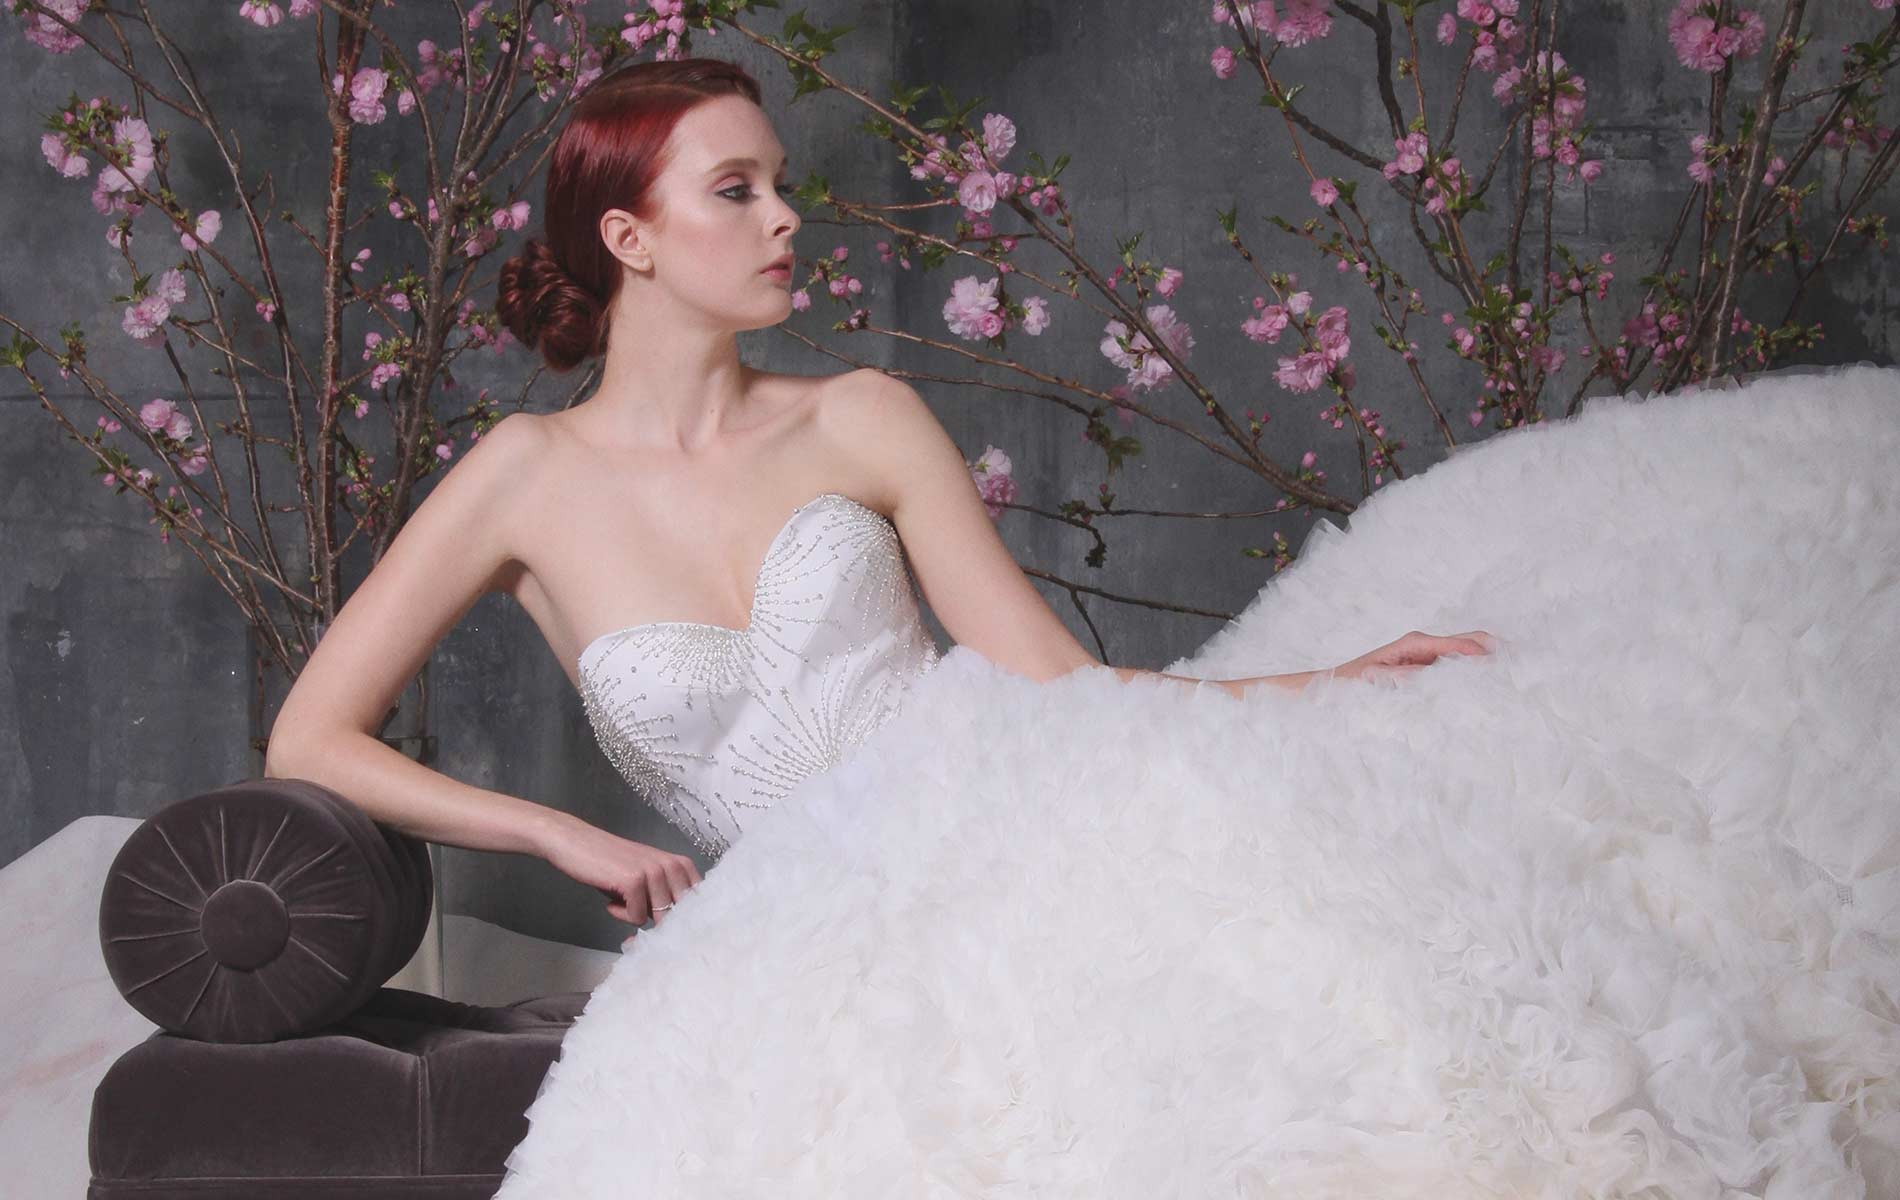 Model wearing a dress from the Christian Siriano Bridal line